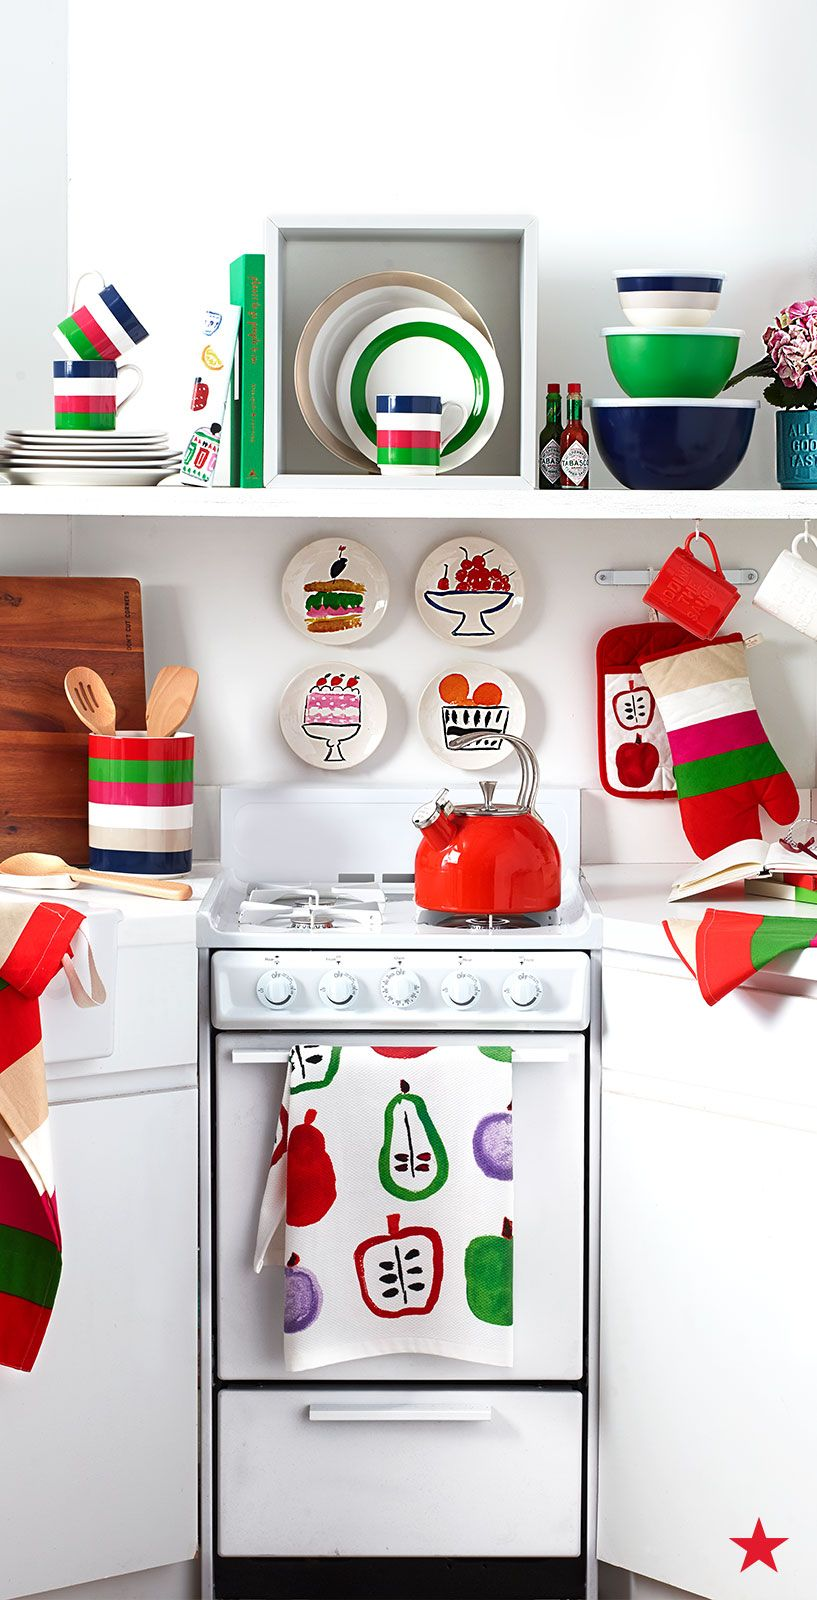 on bag by kitchens dining pin v n spade pinterest about discover kate ideas kitchen